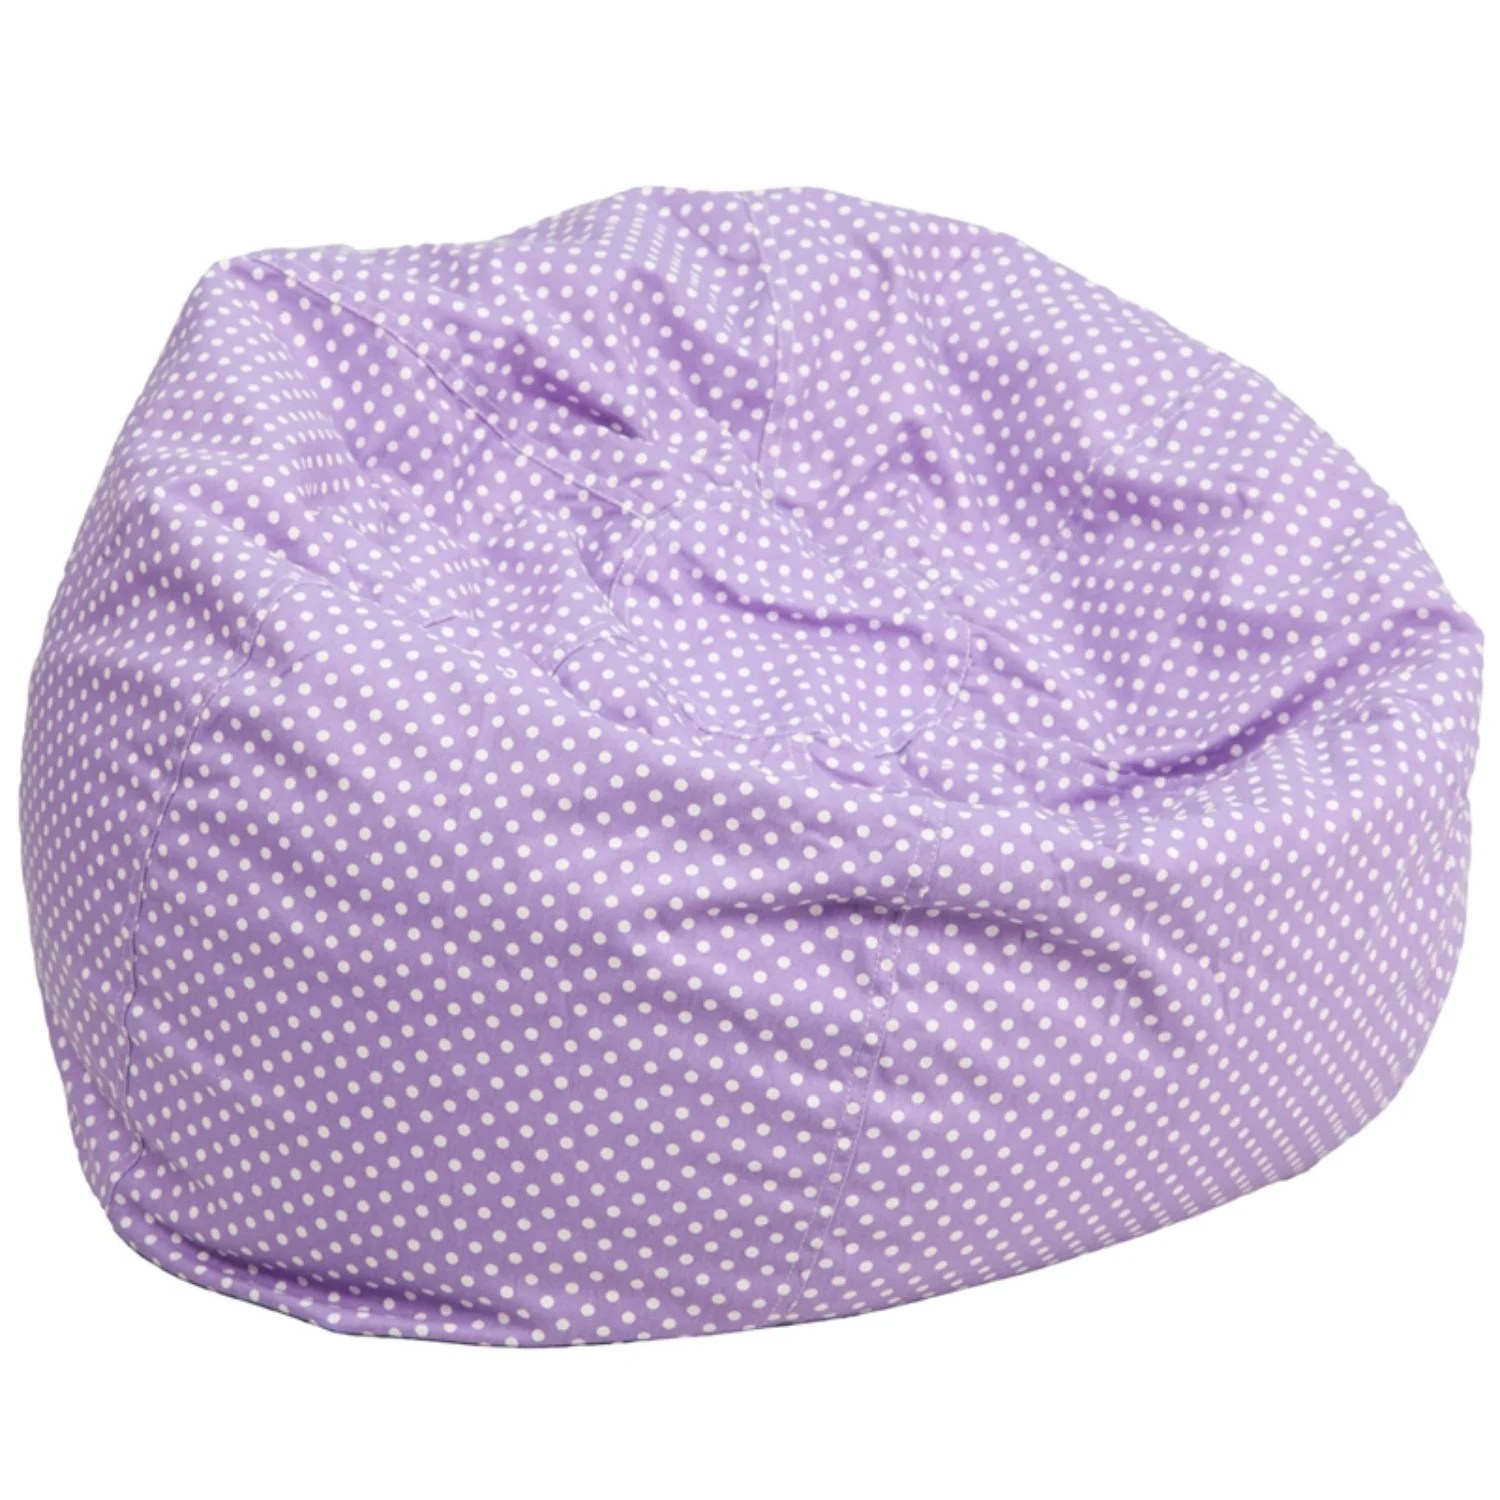 Mini Bean Bag Chair Offex Oversized Lavender Dot Bean Bag Chair